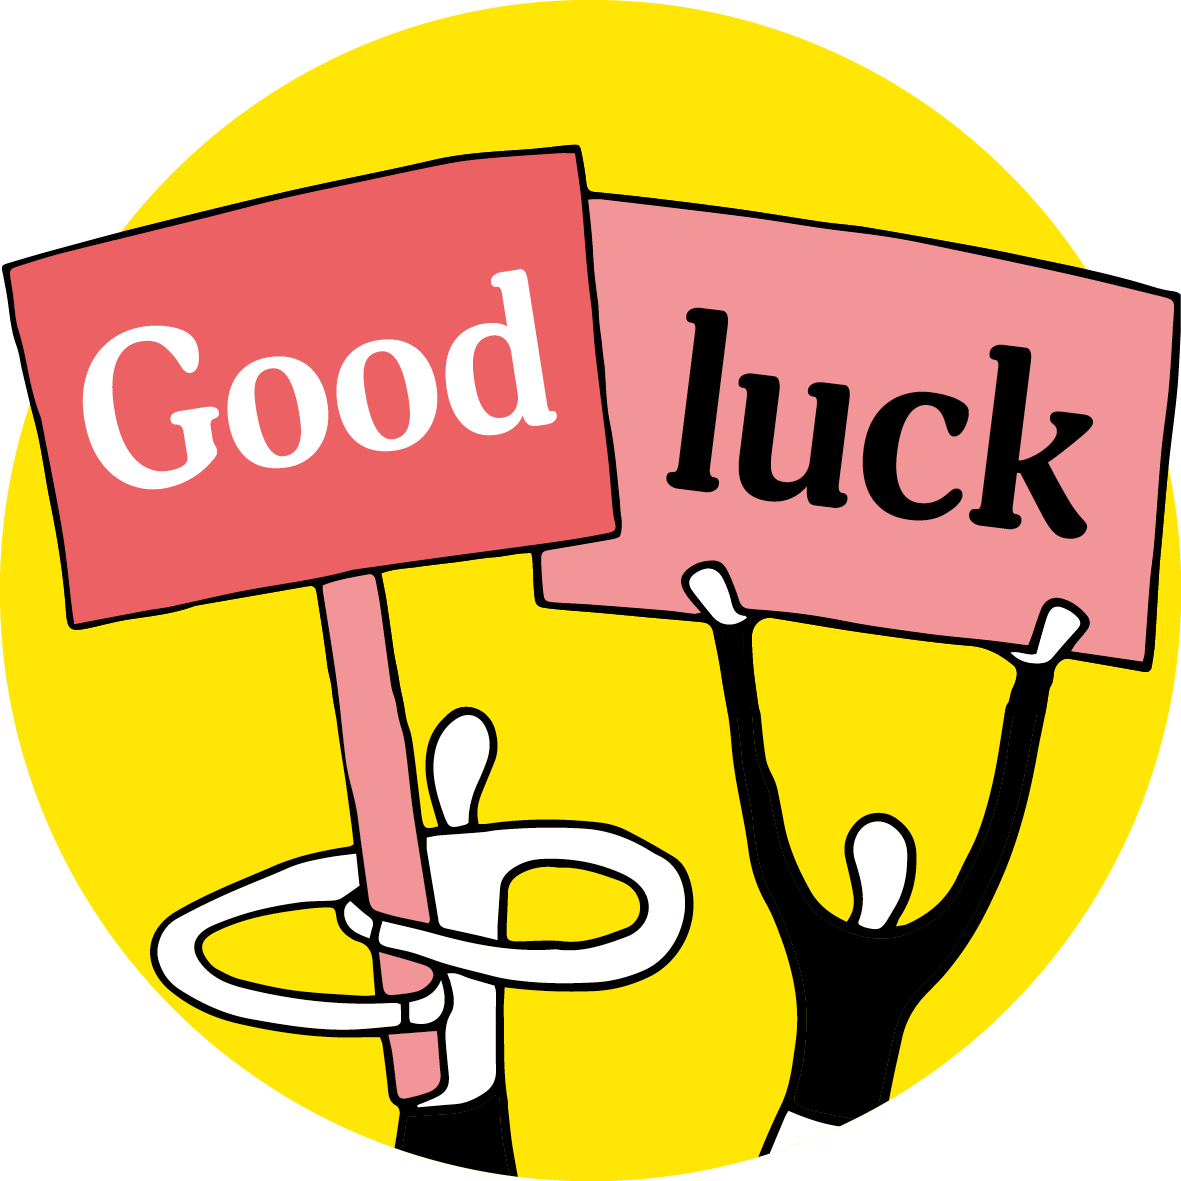 good luck generating your ideas